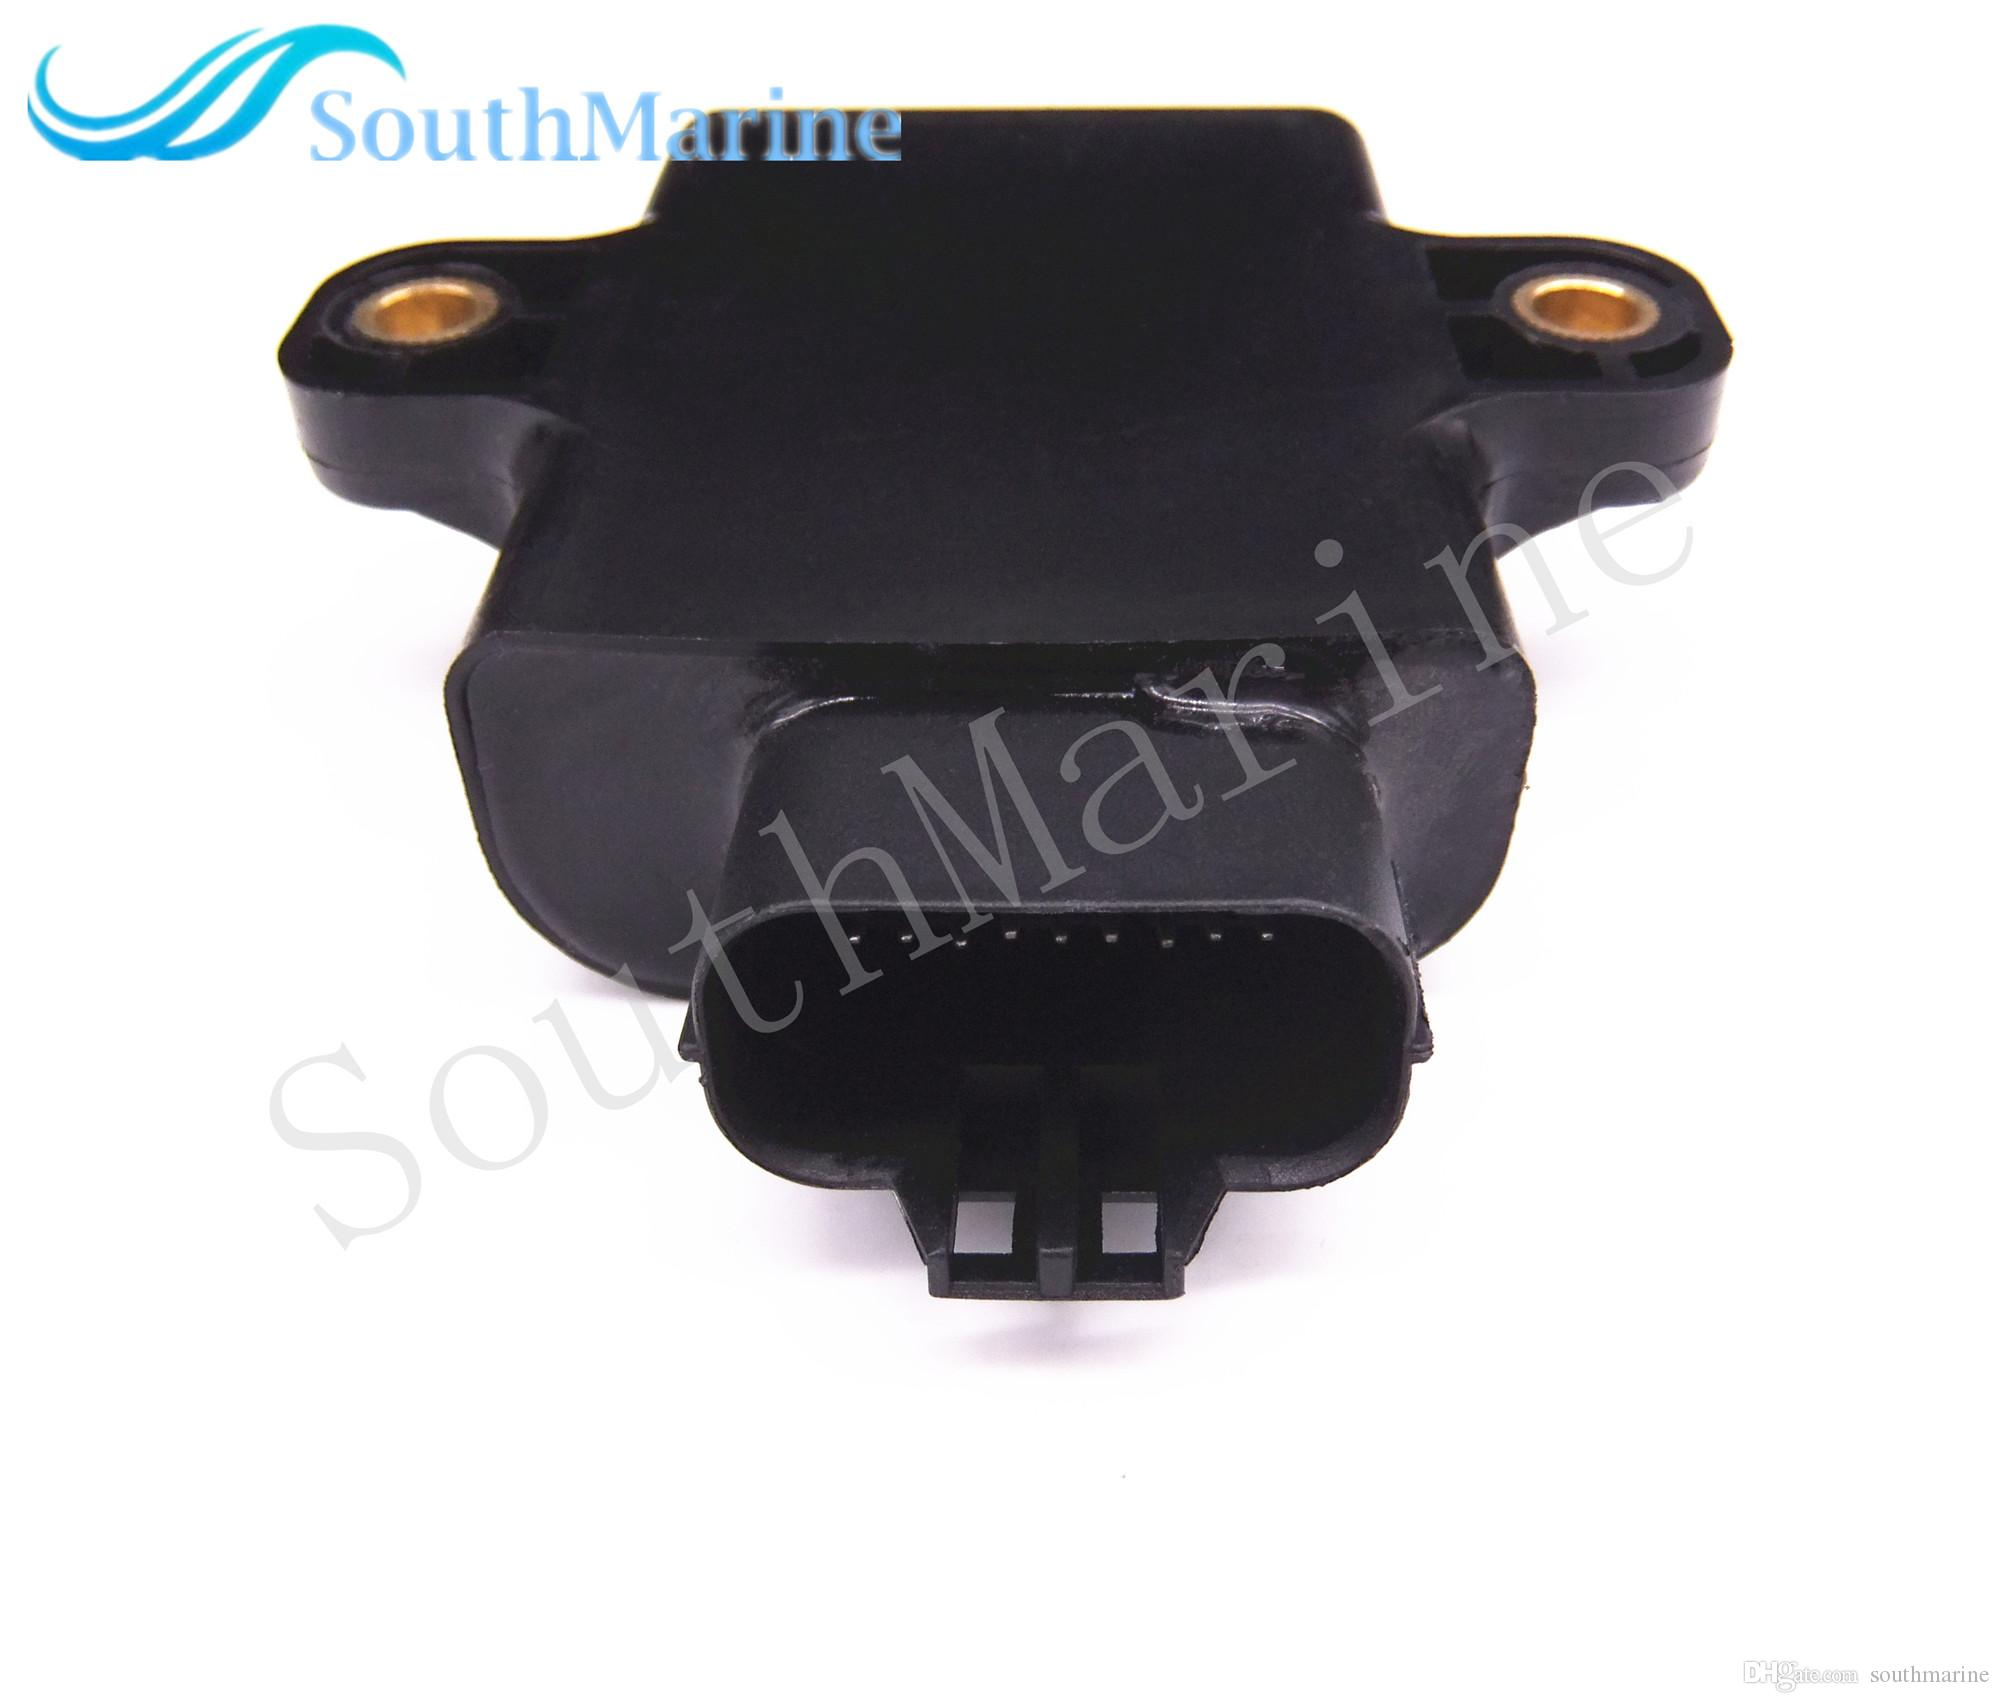 Boat Motor F20-05000300 CDI Unit Assembly for Parsun HDX 4-Stroke F20A F15A Outboard Engine C.D.I UNIT